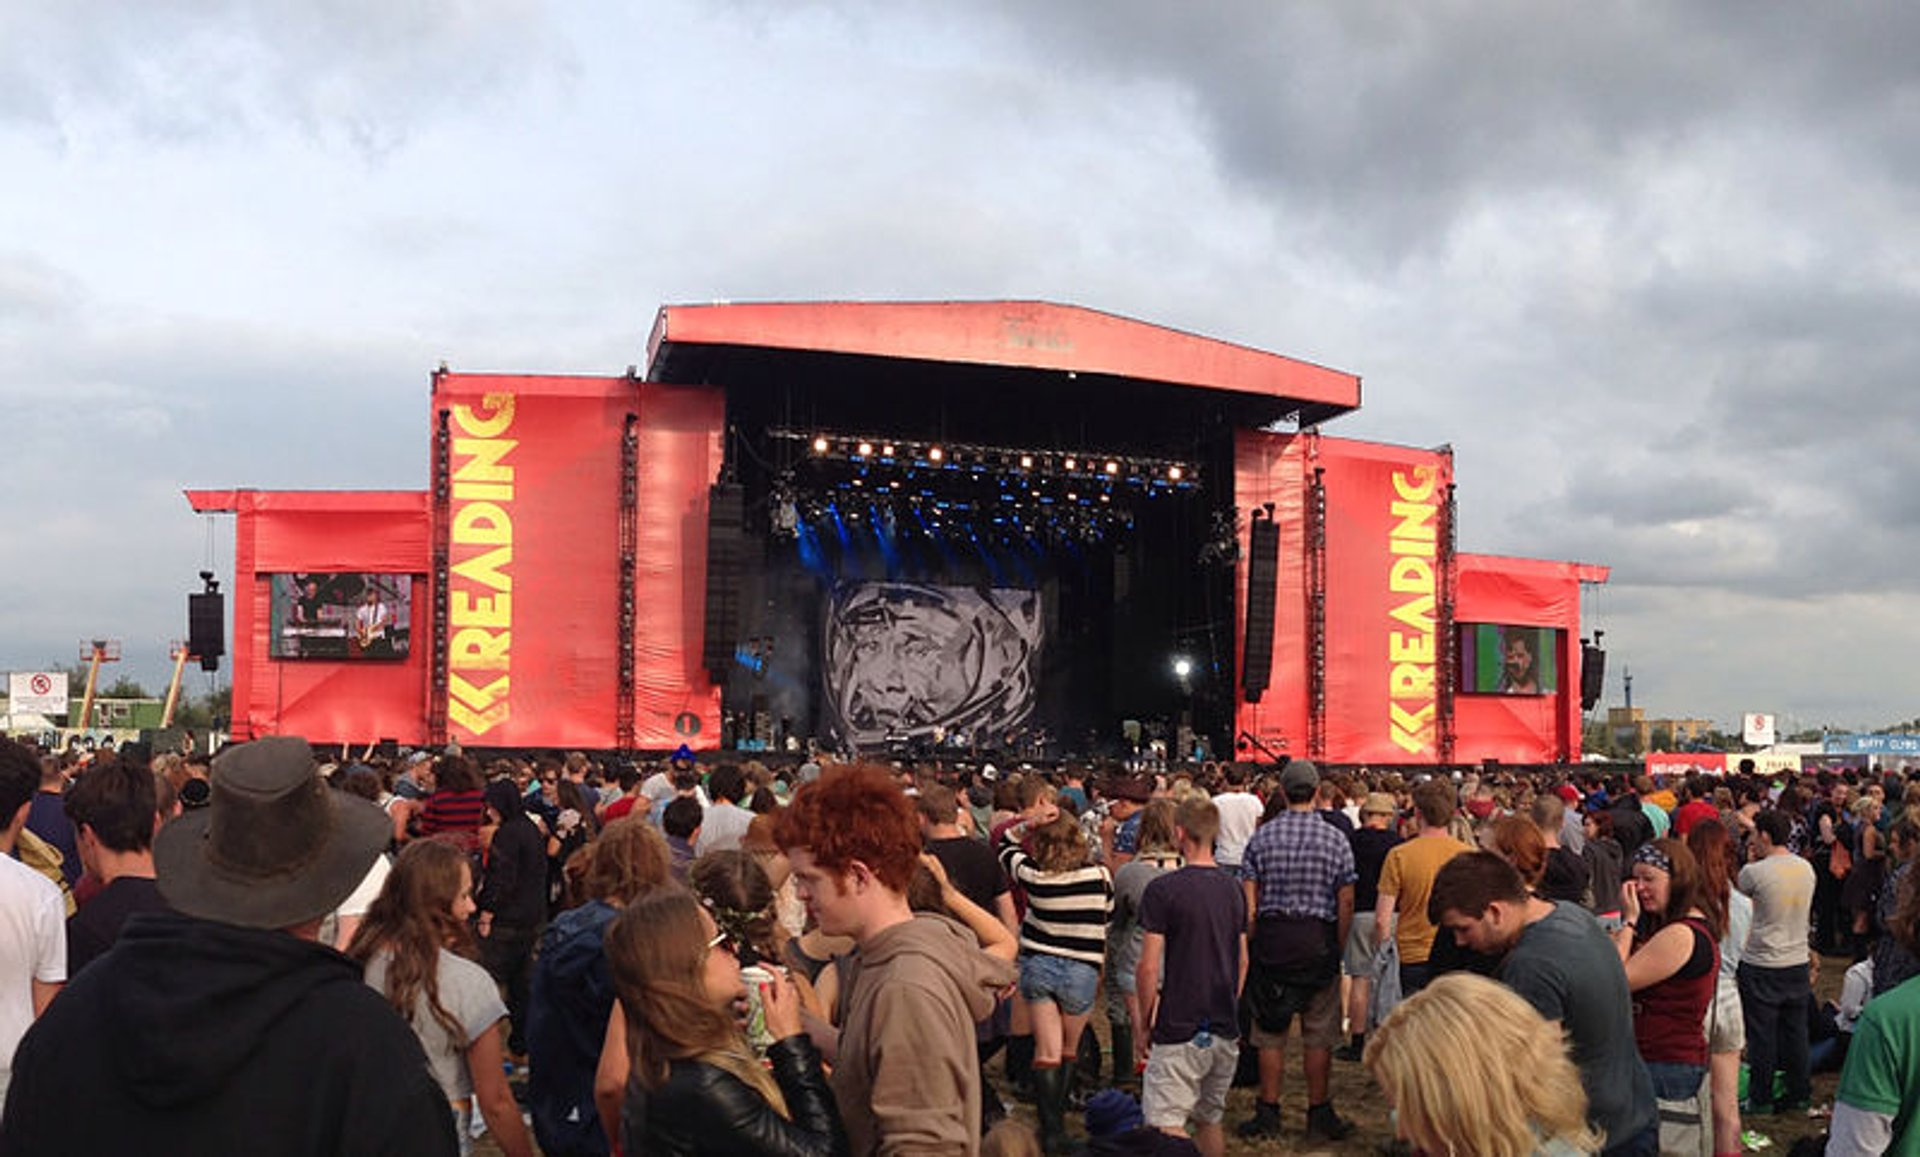 Main stage at the Reading Festival 2019